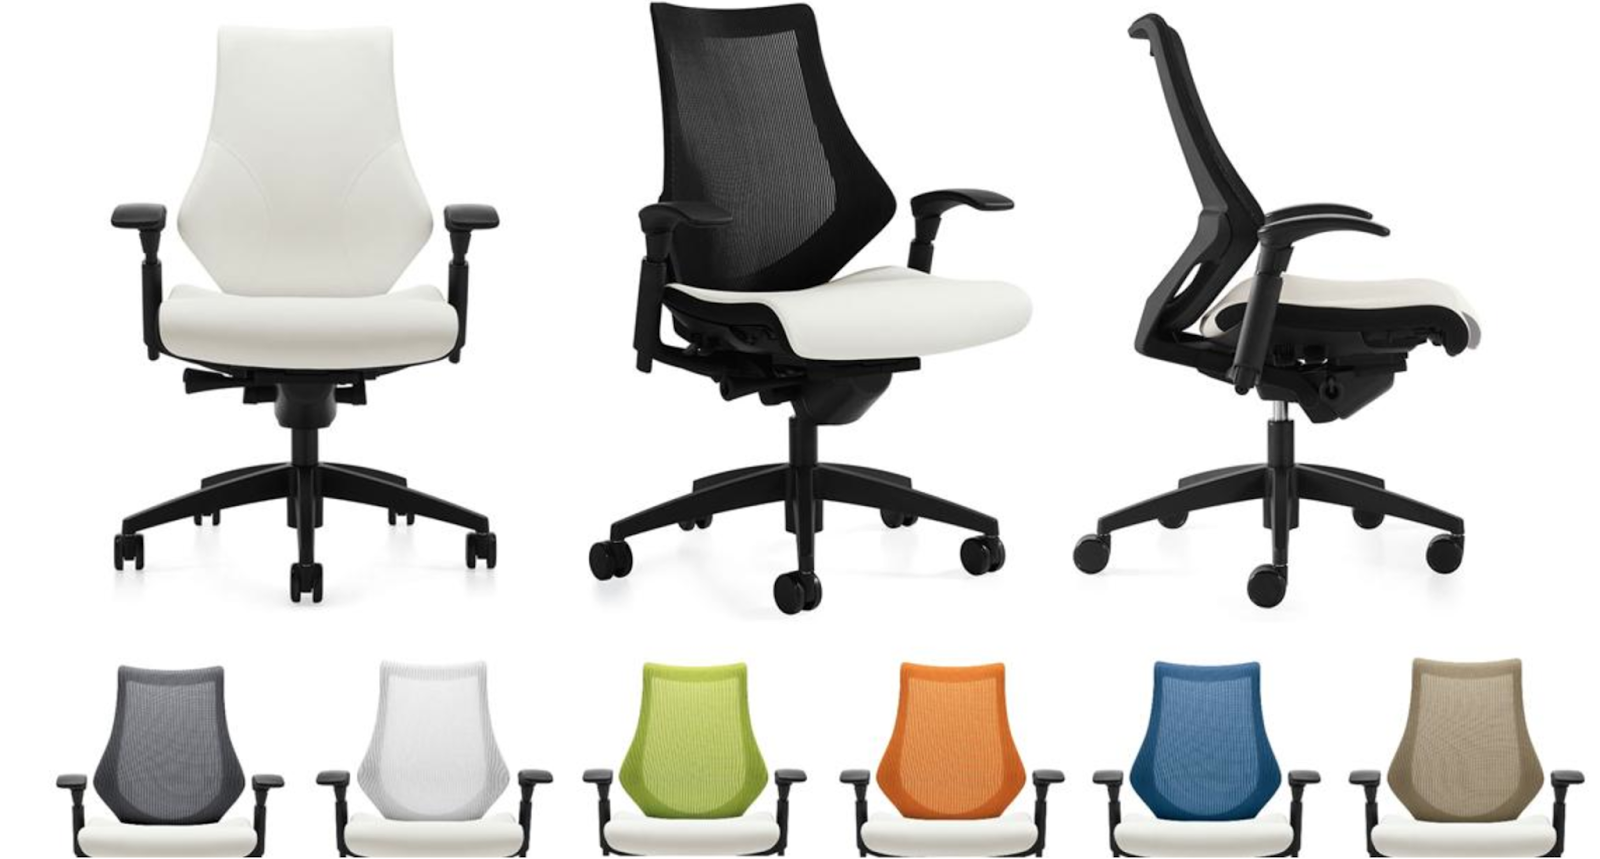 The Office Furniture Blog at OfficeAnything.com: September 2014